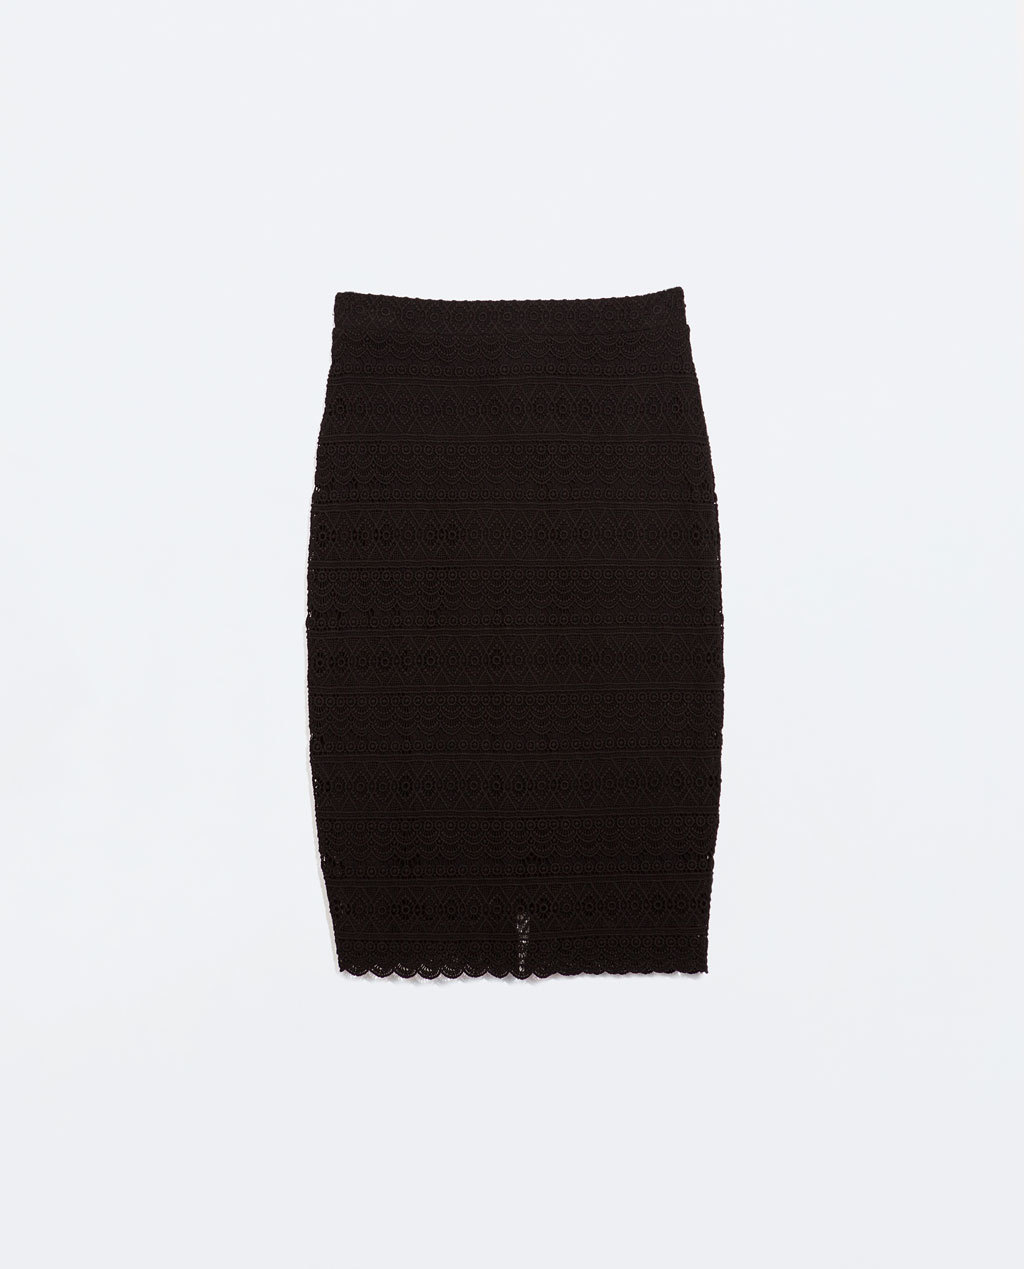 Crochet Tube Skirt - length: below the knee; pattern: plain; fit: tight; waist: mid/regular rise; predominant colour: black; occasions: casual, evening, creative work; fibres: cotton - 100%; style: tube; texture group: knits/crochet; pattern type: knitted - other; season: a/w 2014